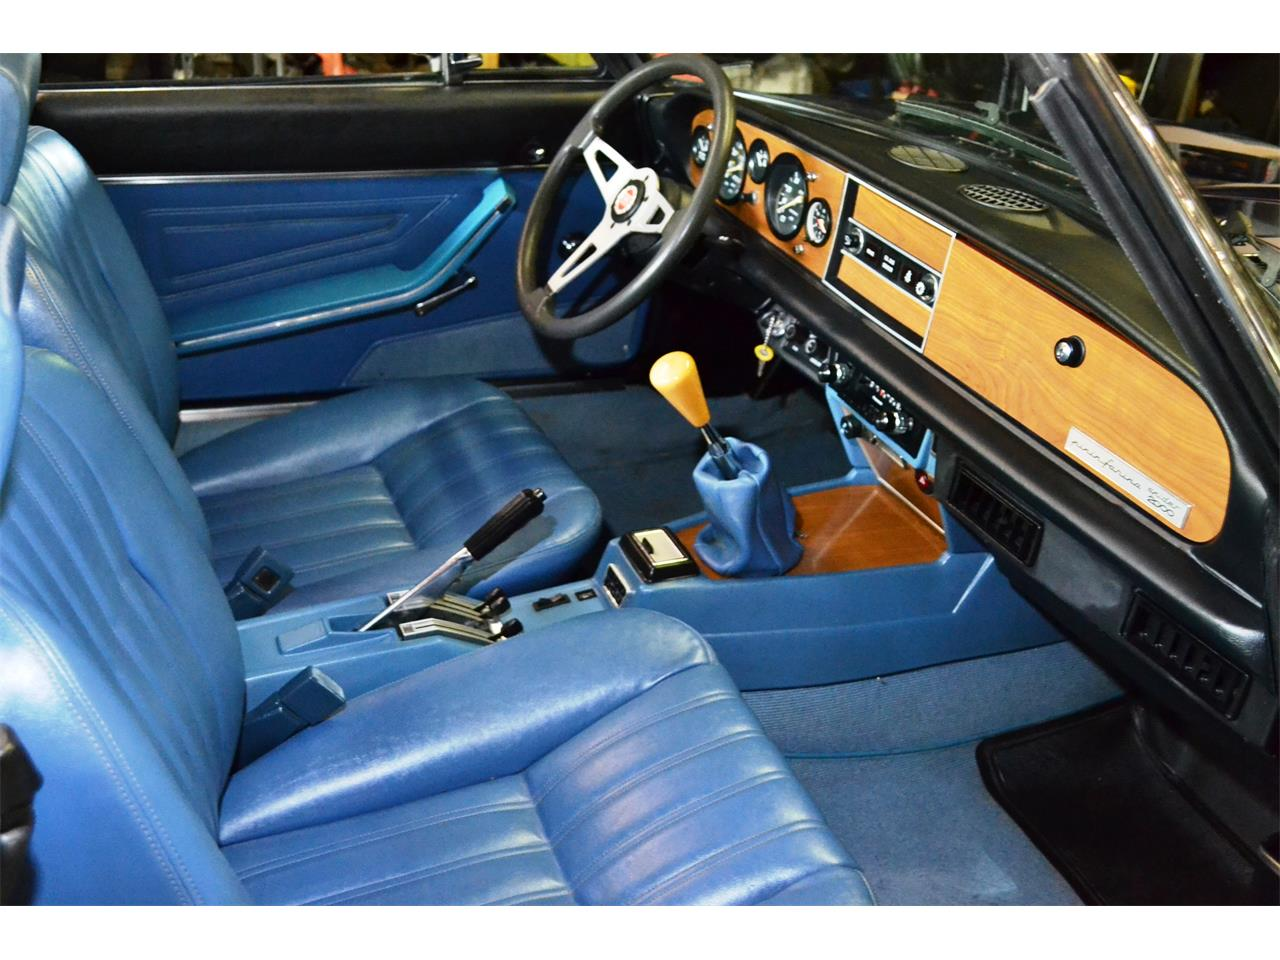 1981 Fiat Spider for sale in Barrington, IL – photo 28